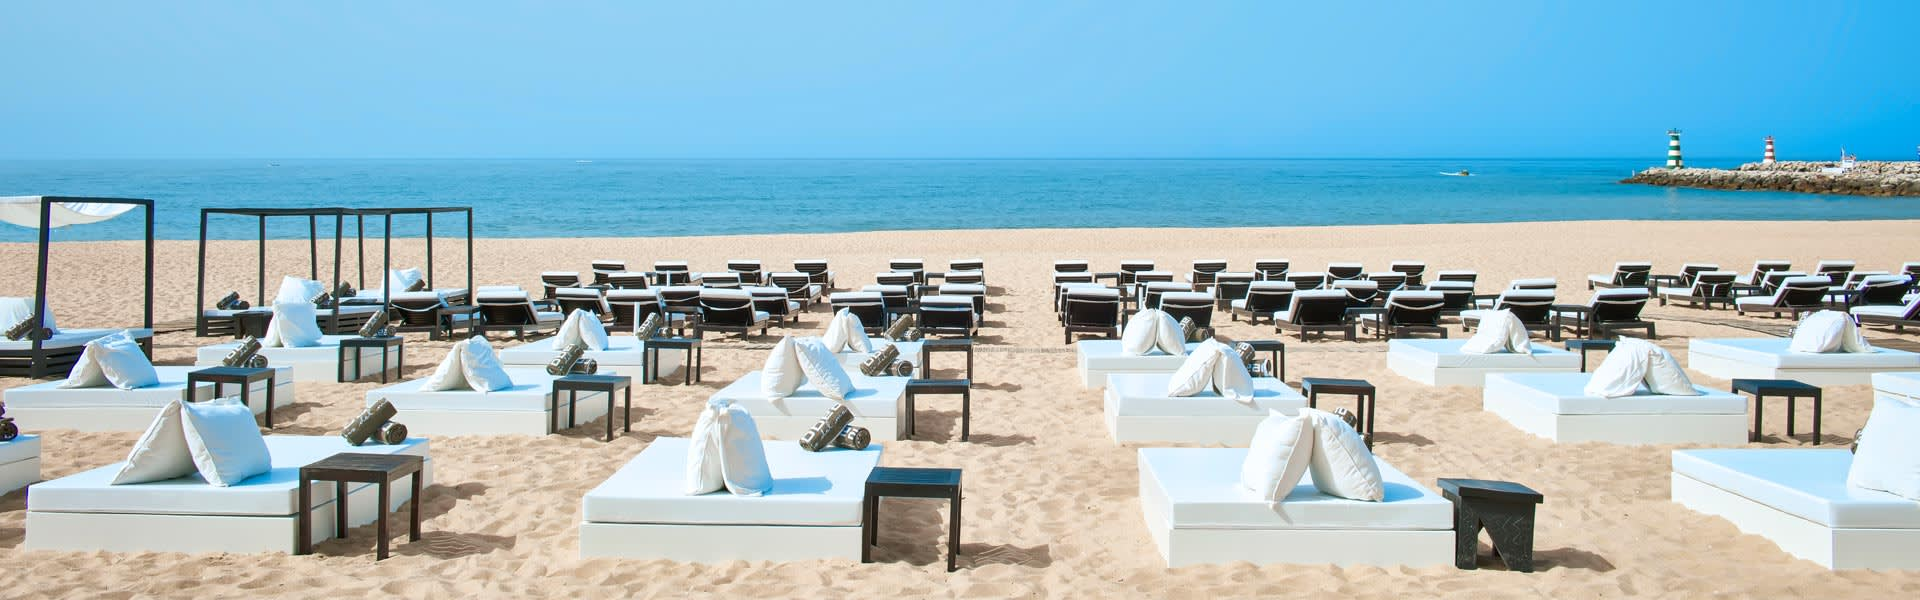 Hotel Tivoli Carvoeiro Algarve Booking Golf Resort Portugal Things To Do At Anantara Vilamoura Algarve